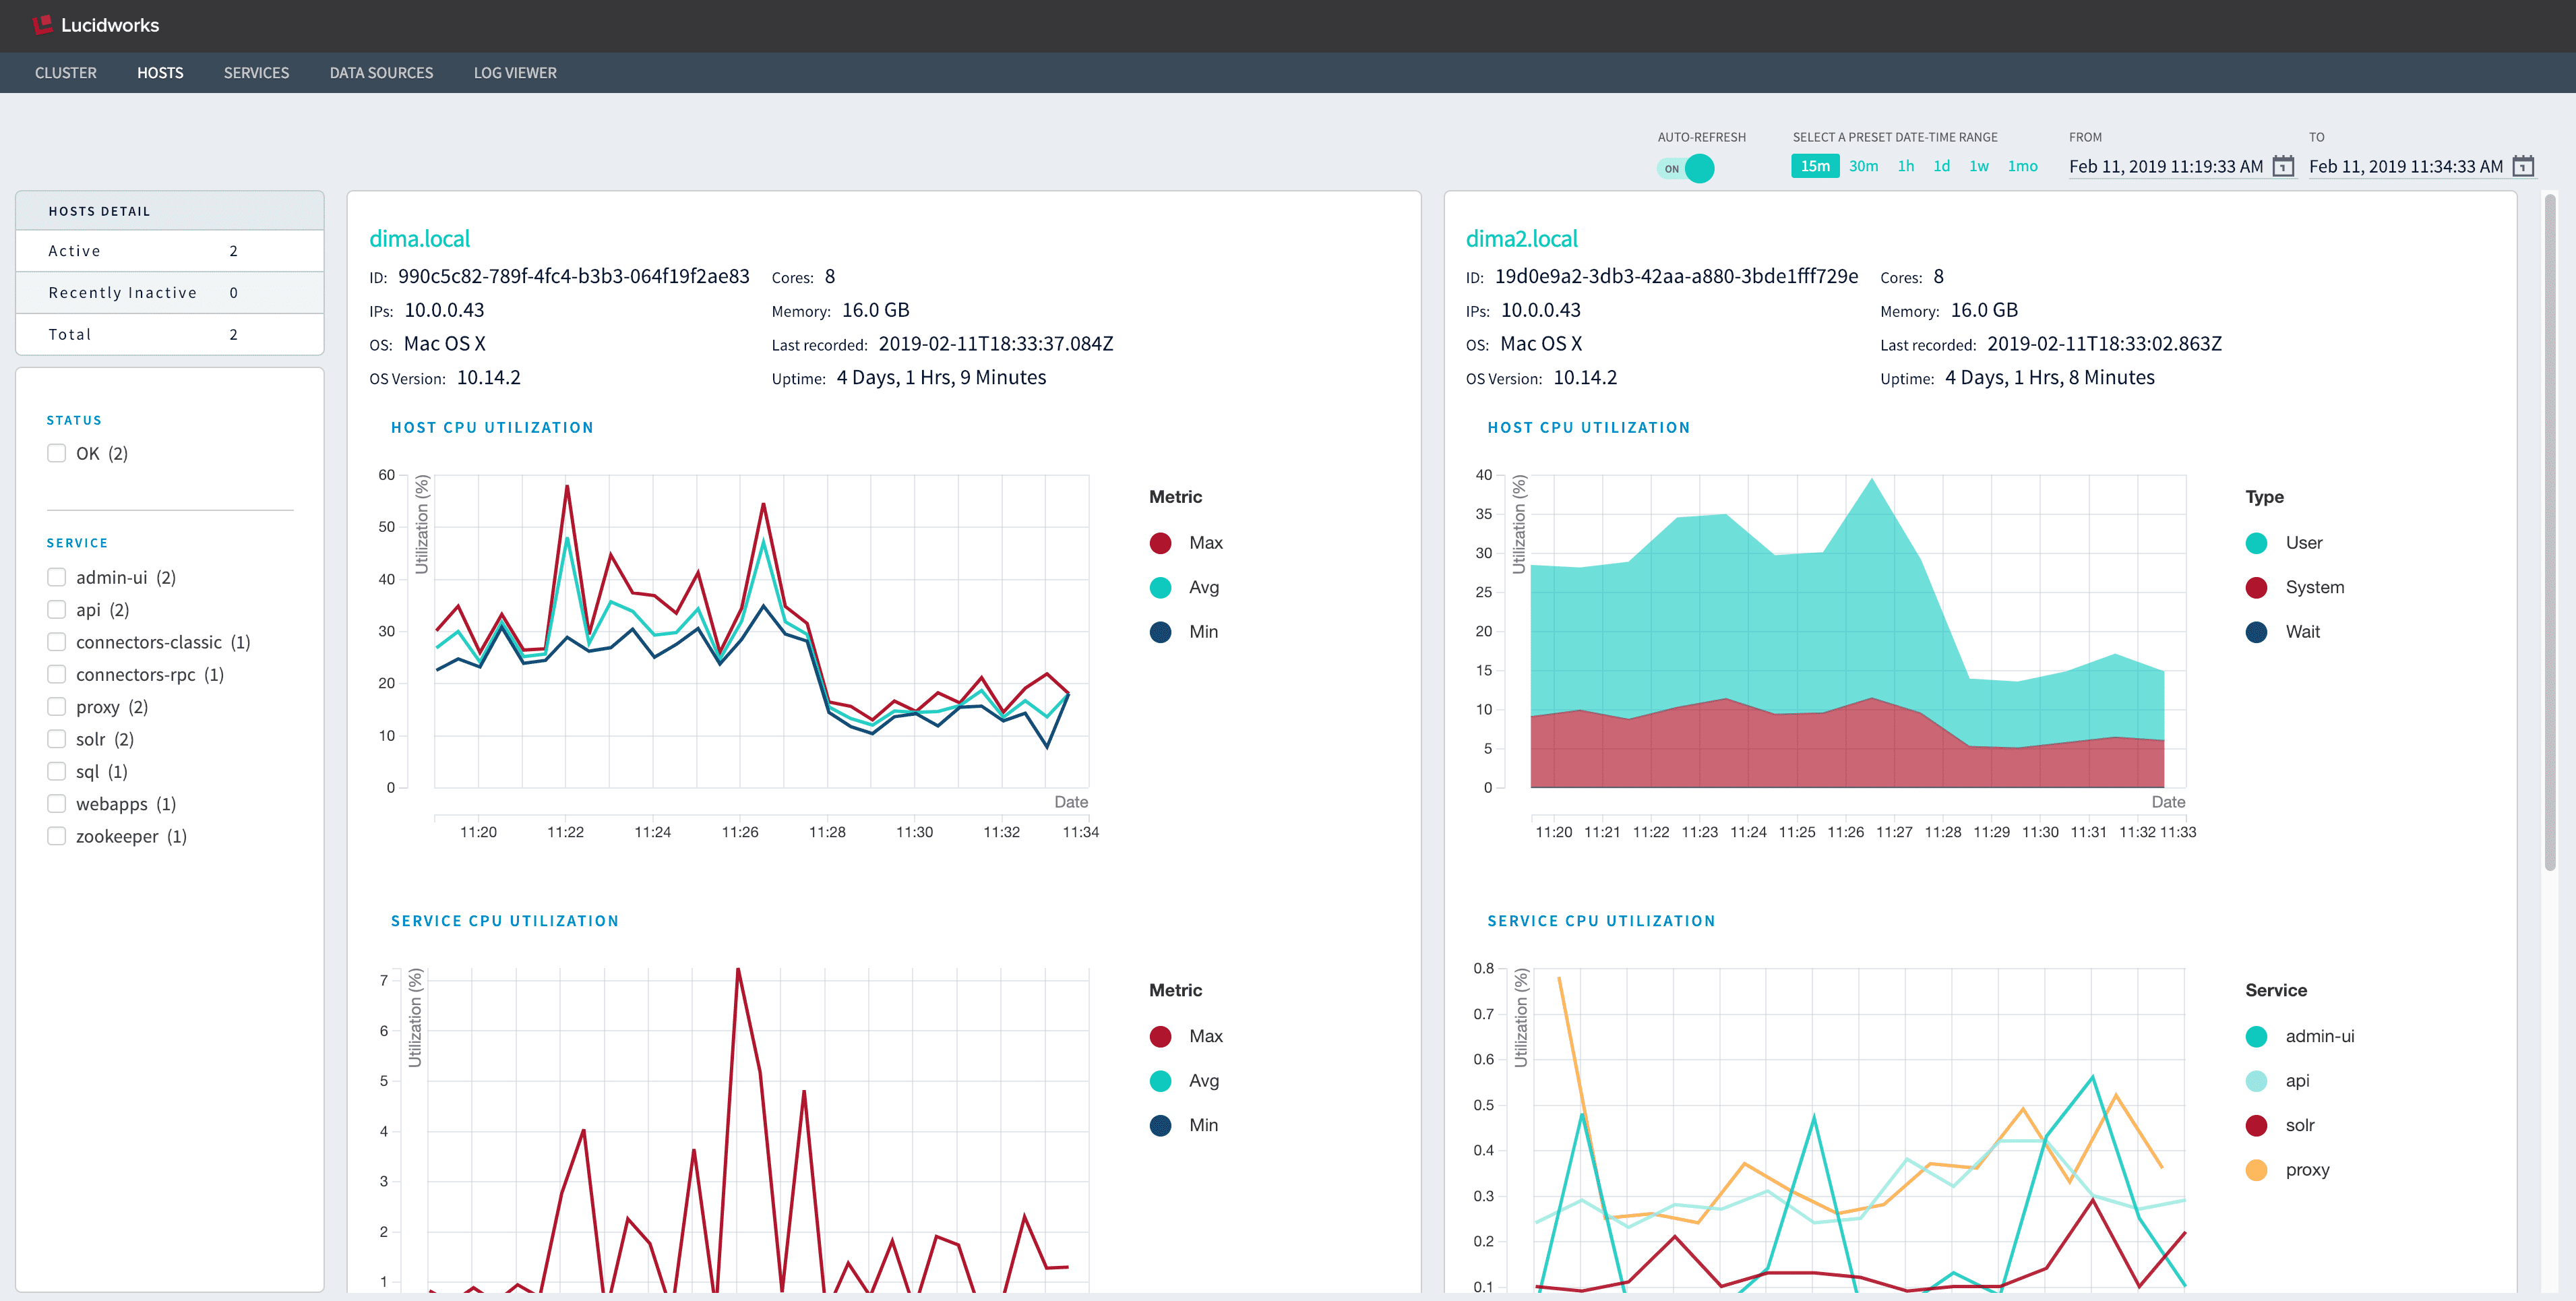 DevOps Center Hosts dashboard